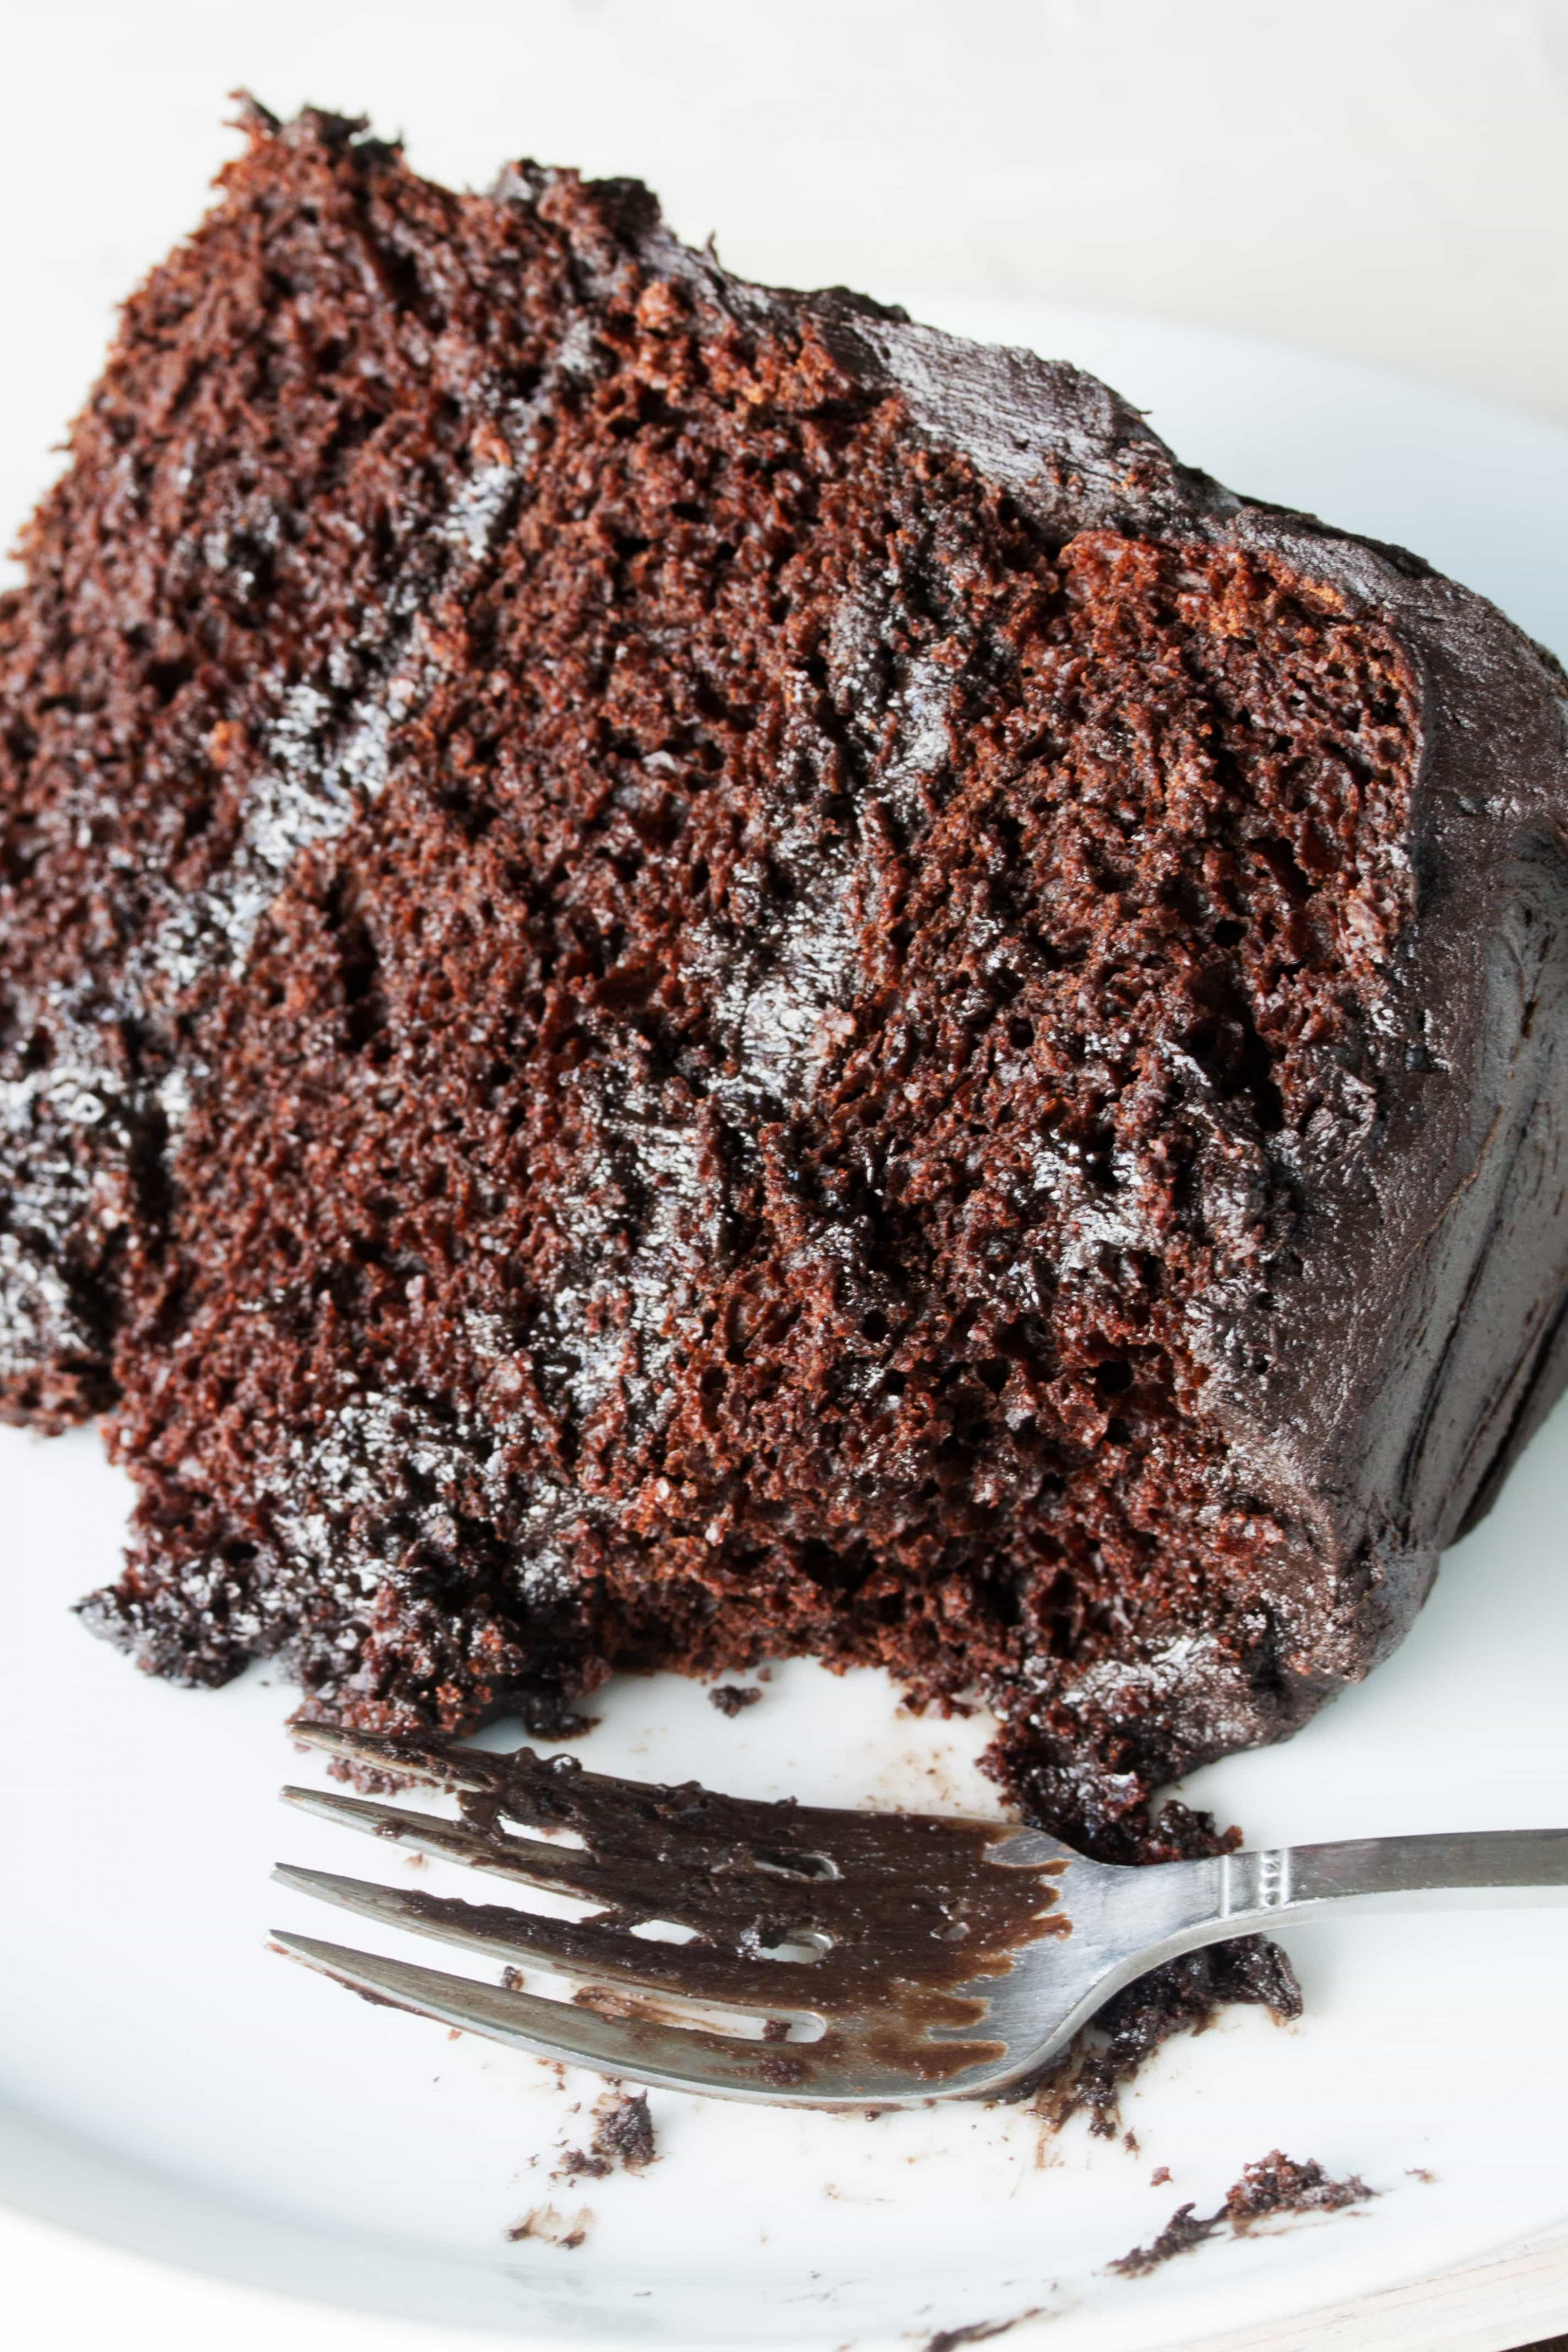 The Most Amazing Chocolate Cake - Recipe Rich Chocolate Cake